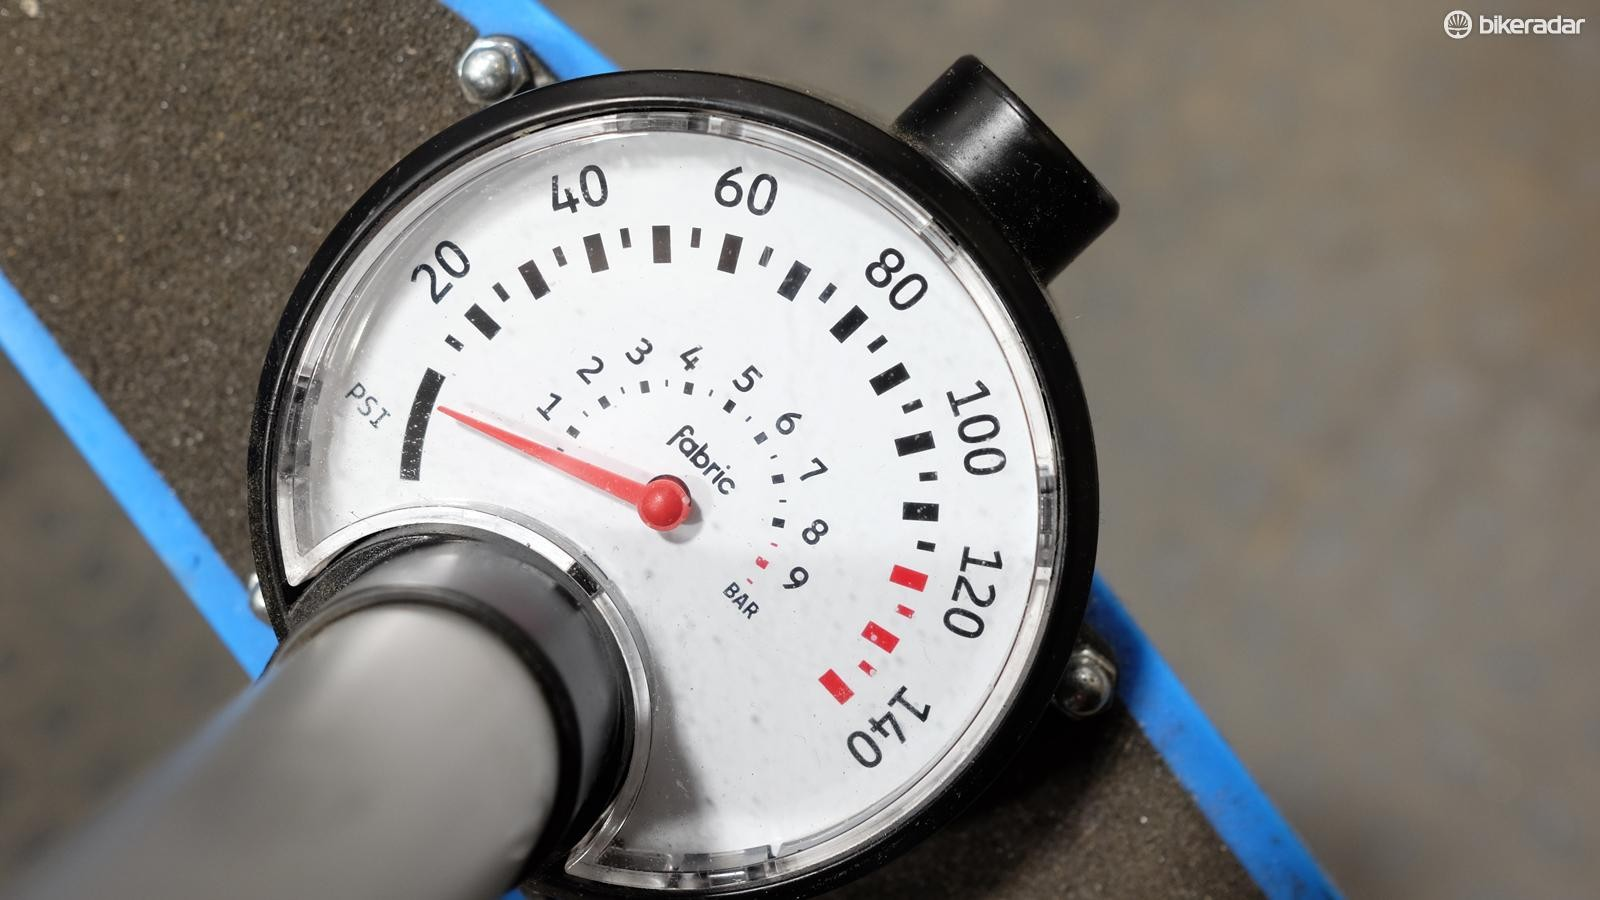 Inflating your tyres to the correct pressure is an essential part of bike maintenance